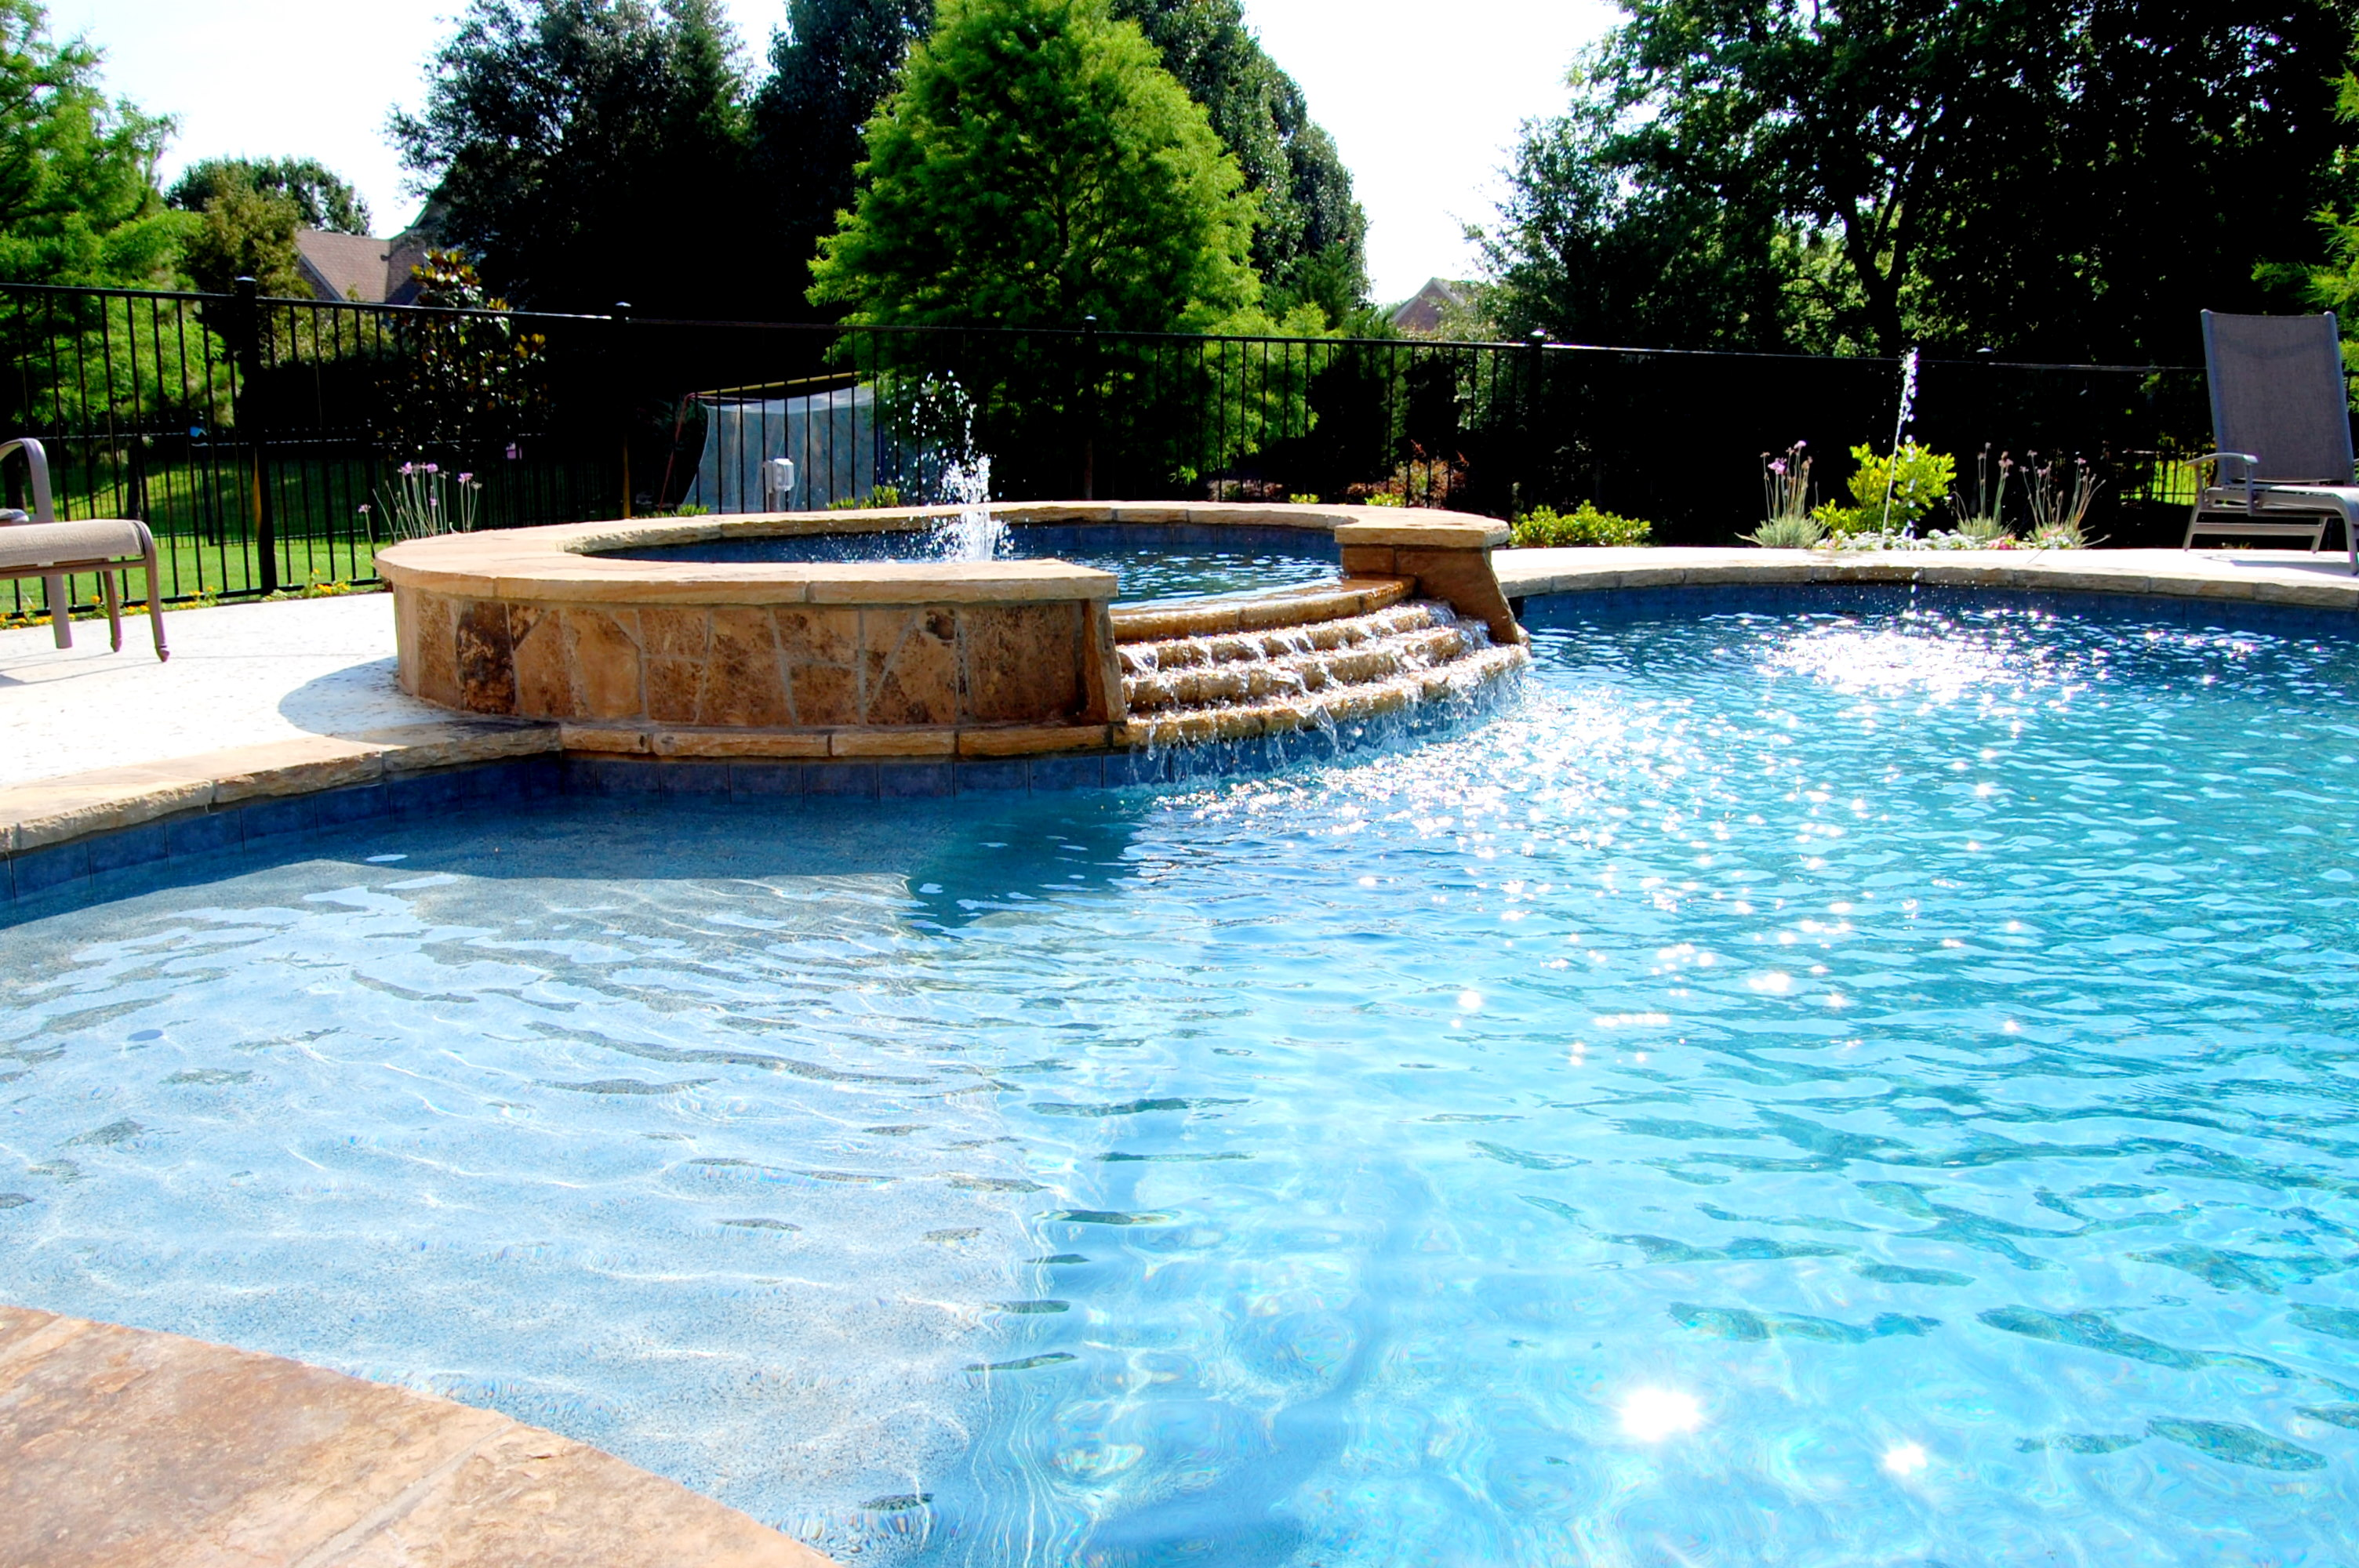 of Our Work Arlington TX Pool Cleaning & Installation